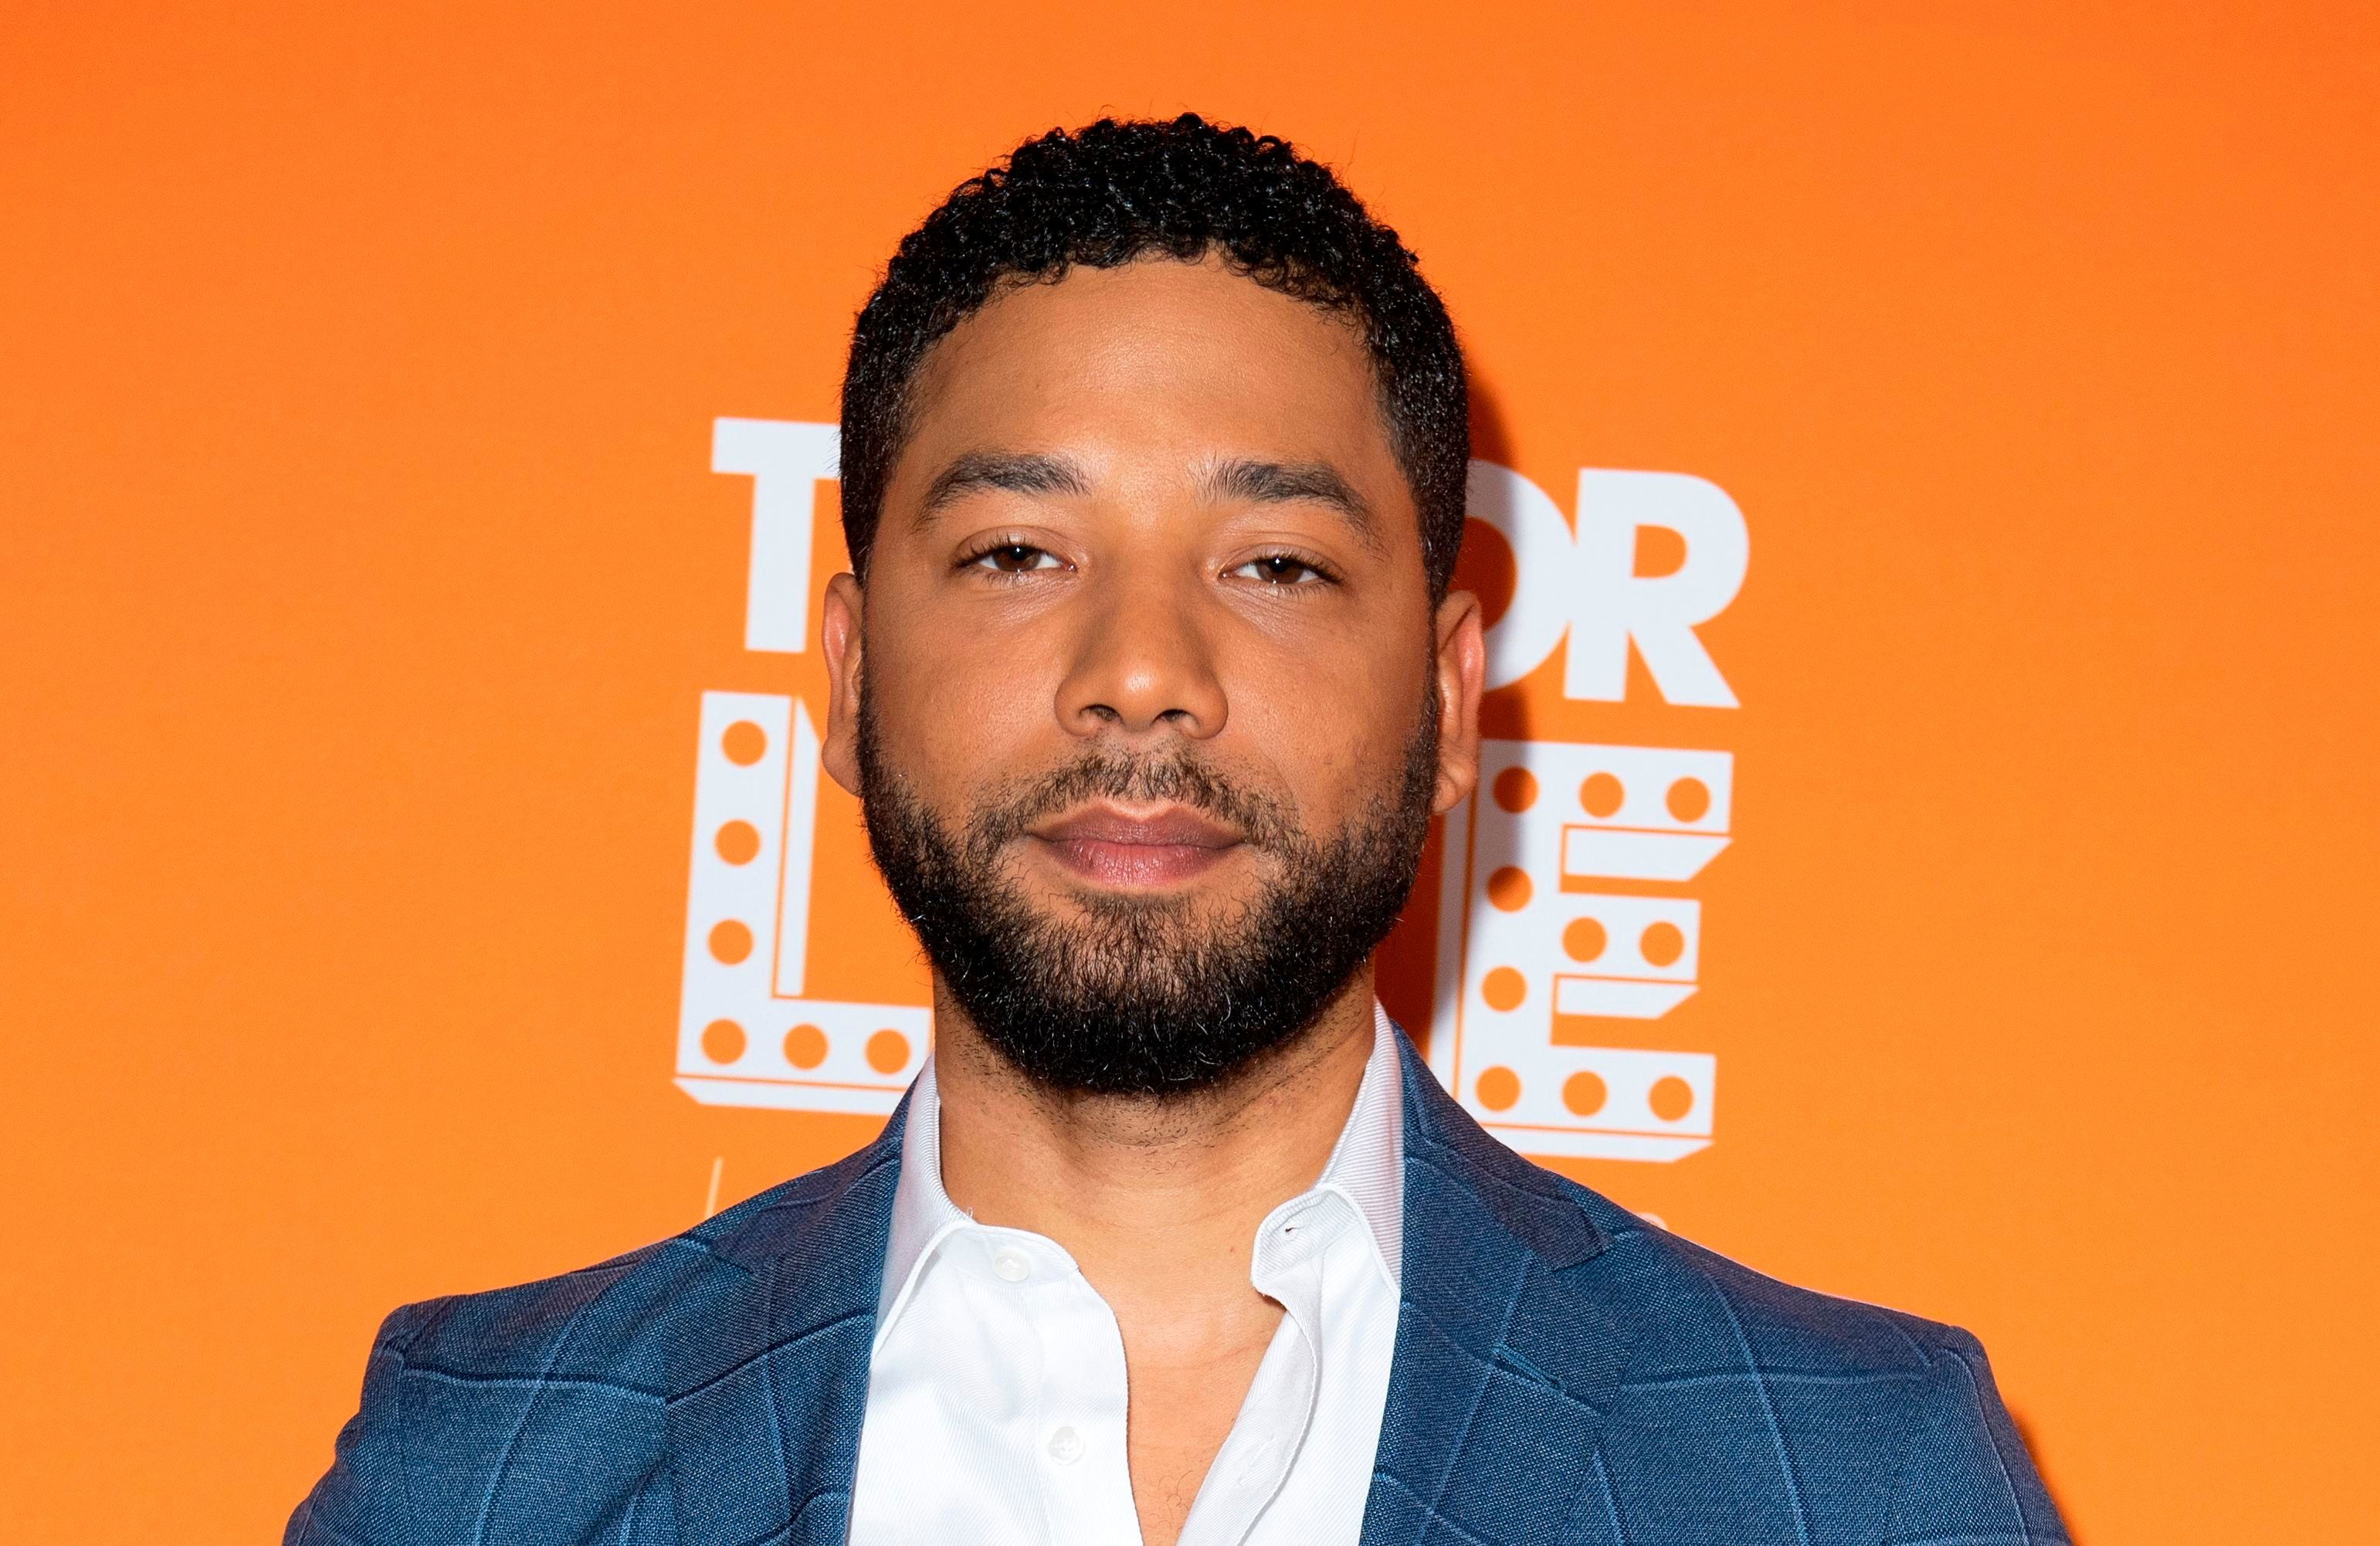 Empire Star Jussie Smollett Arrested For Allegedly Faking Hate Crime